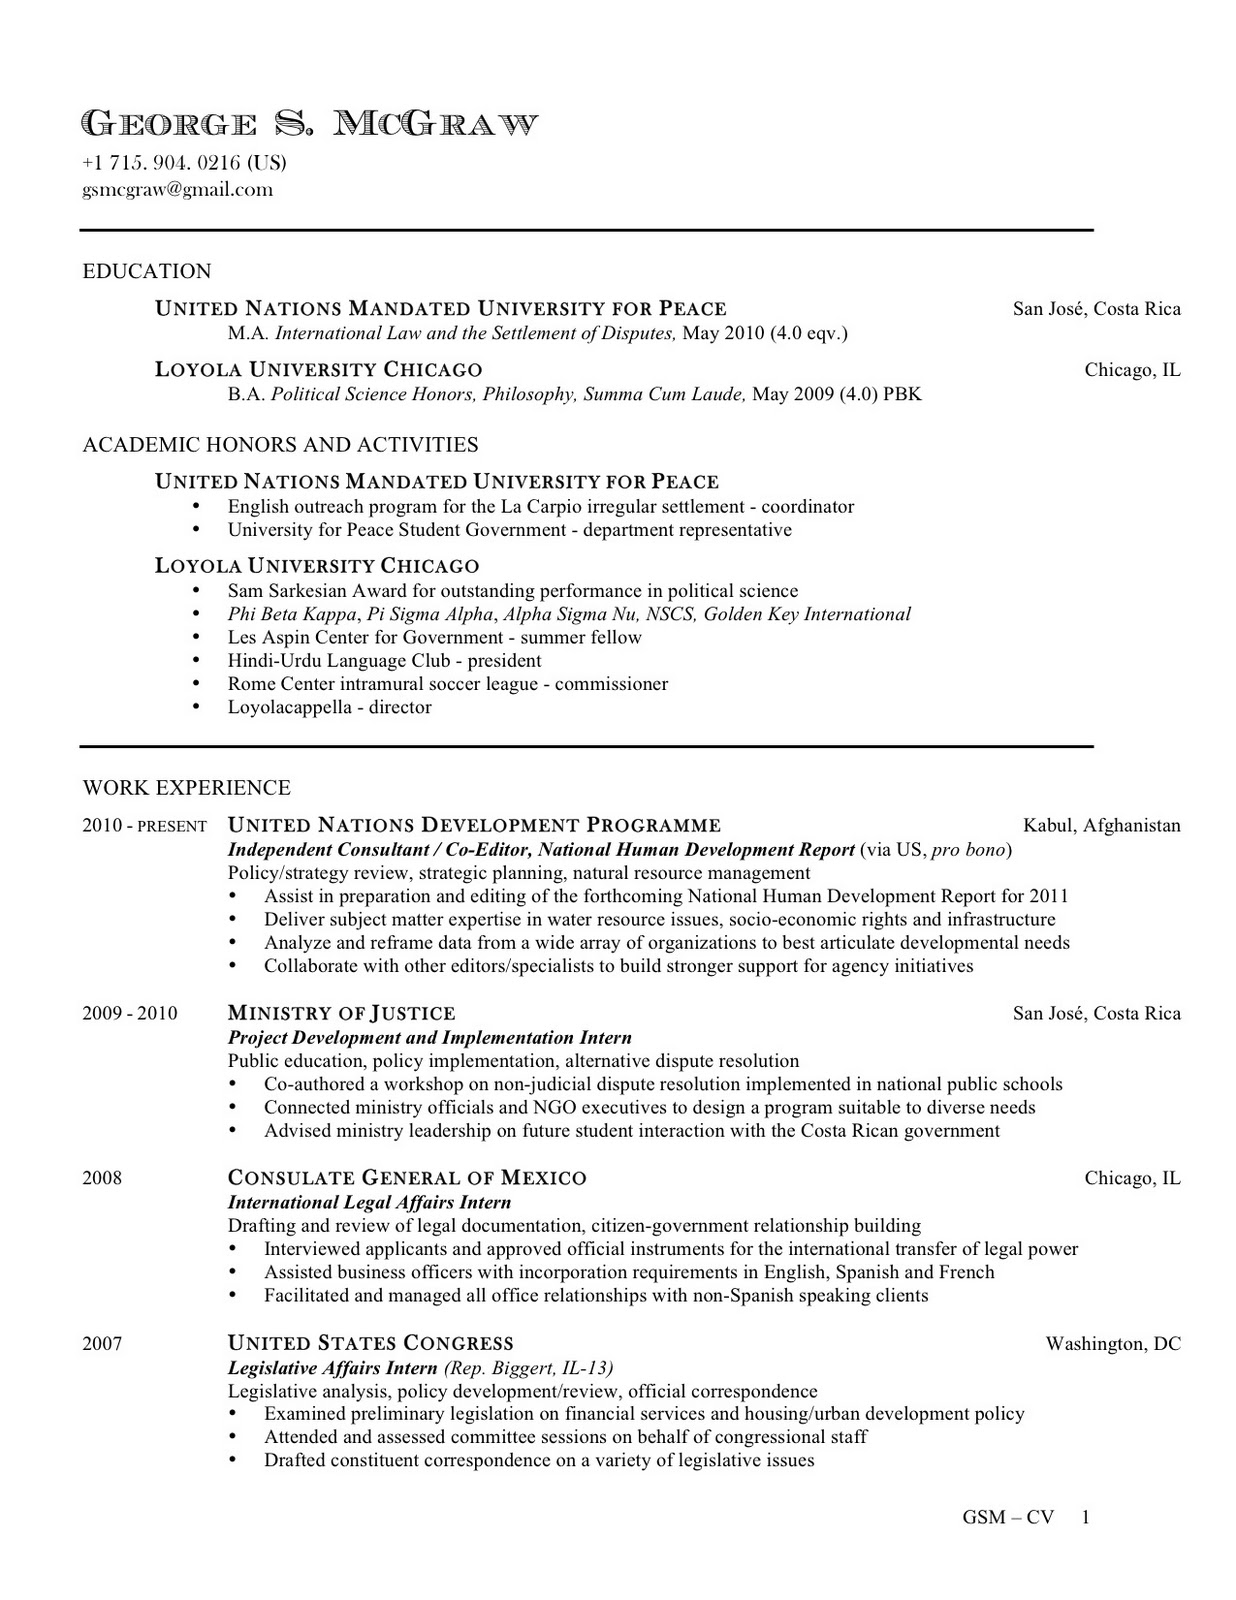 resume contact information meganwest co resume contact information